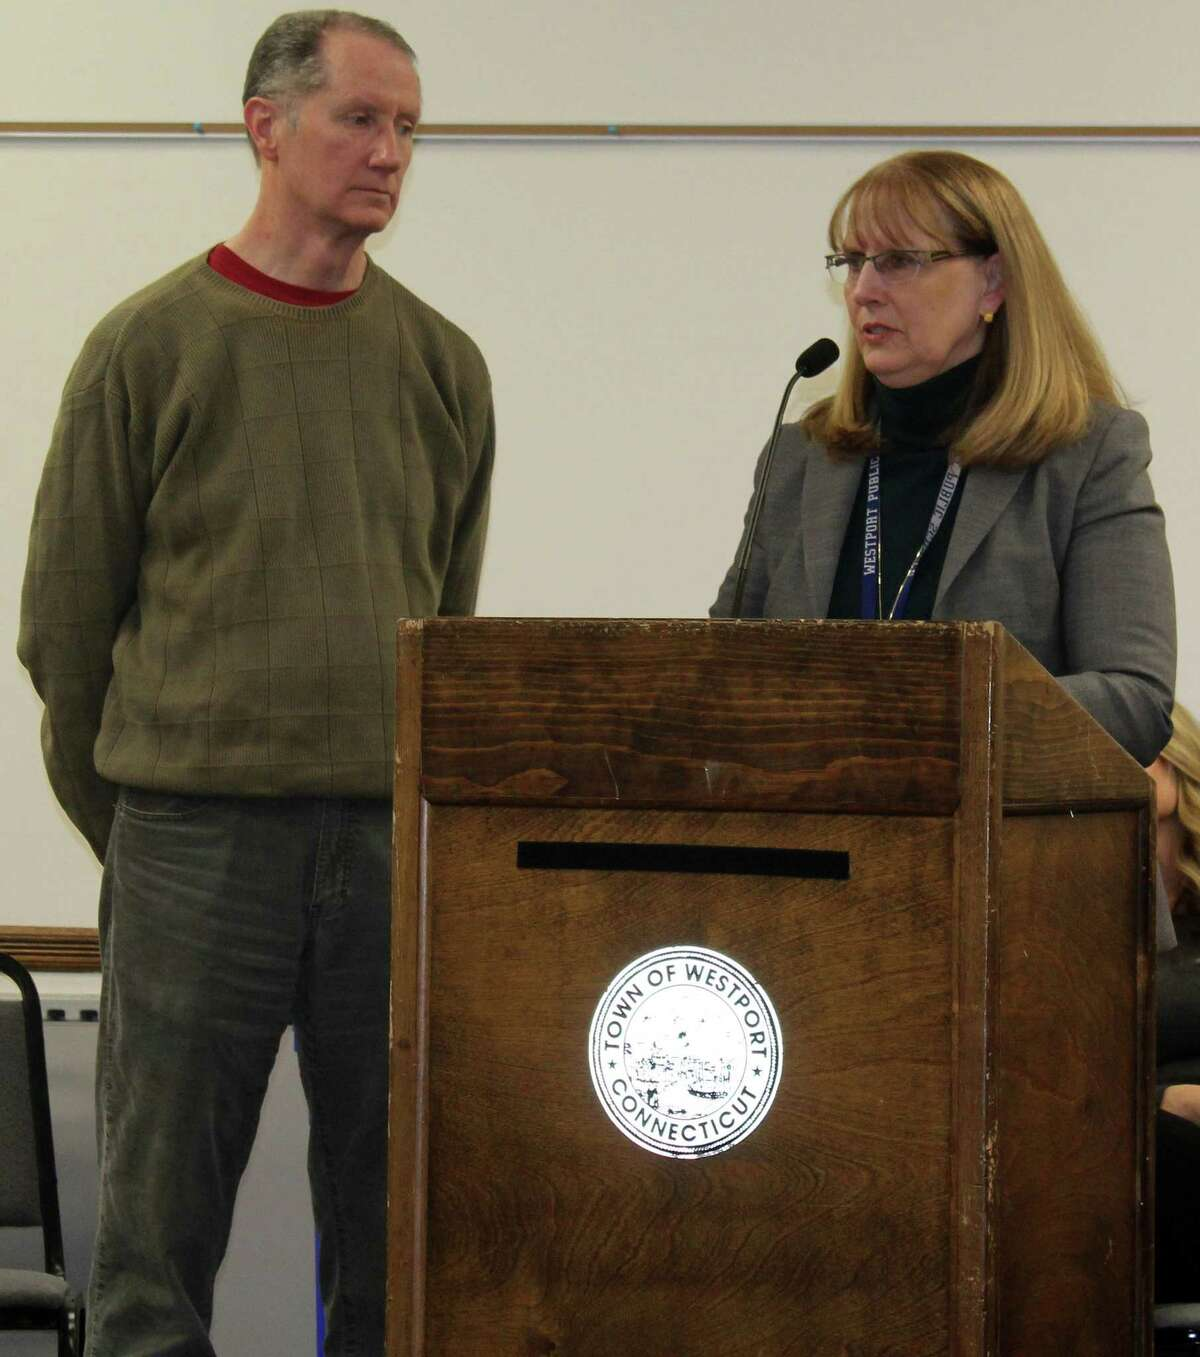 Westport Public Schools Superintendent Colleen Palmer asked the Board of Finance to appropriate four million dollars for the purchase or rental of portable classrooms for the elementary schools at the board's Feb. 5 meeting in Westport Town Hall with education board Chair Mark Mathias by her side.